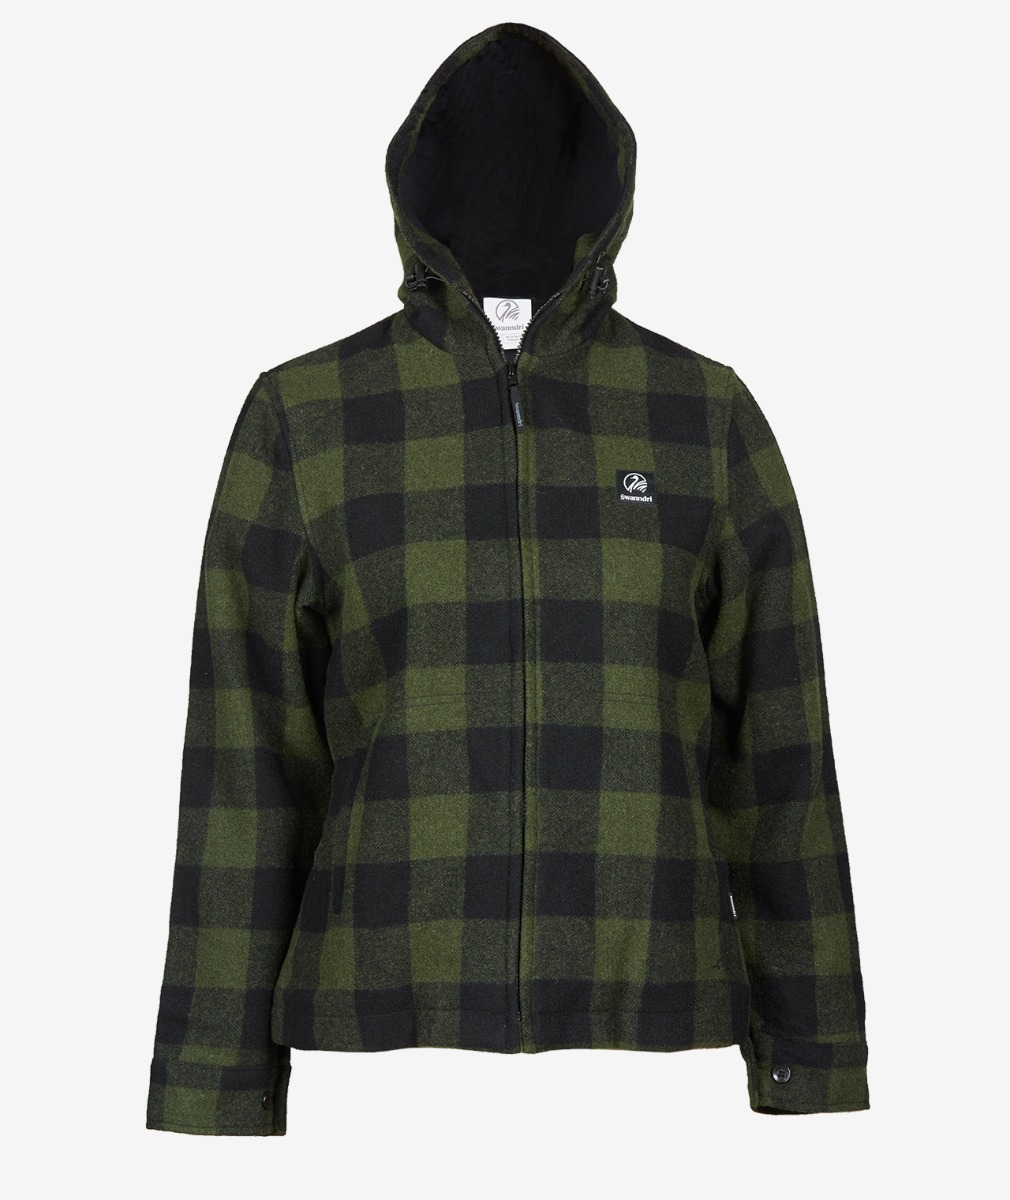 Swanndri Women's Portland Hoody in Olive/Black Check